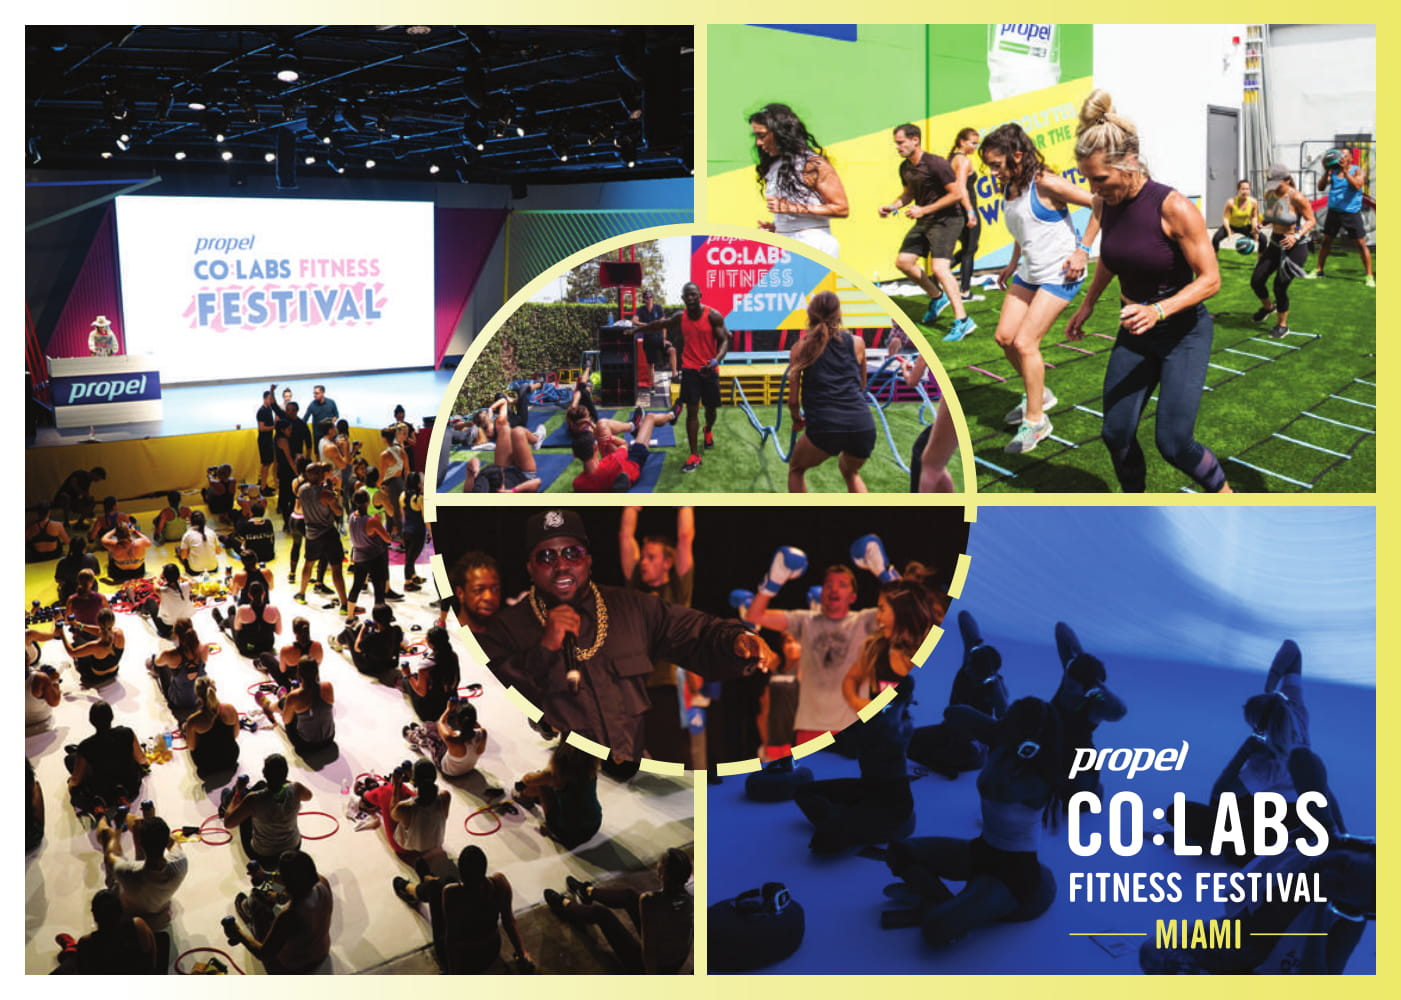 Propel Co: Labs Fitness Festival is Coming to Miami